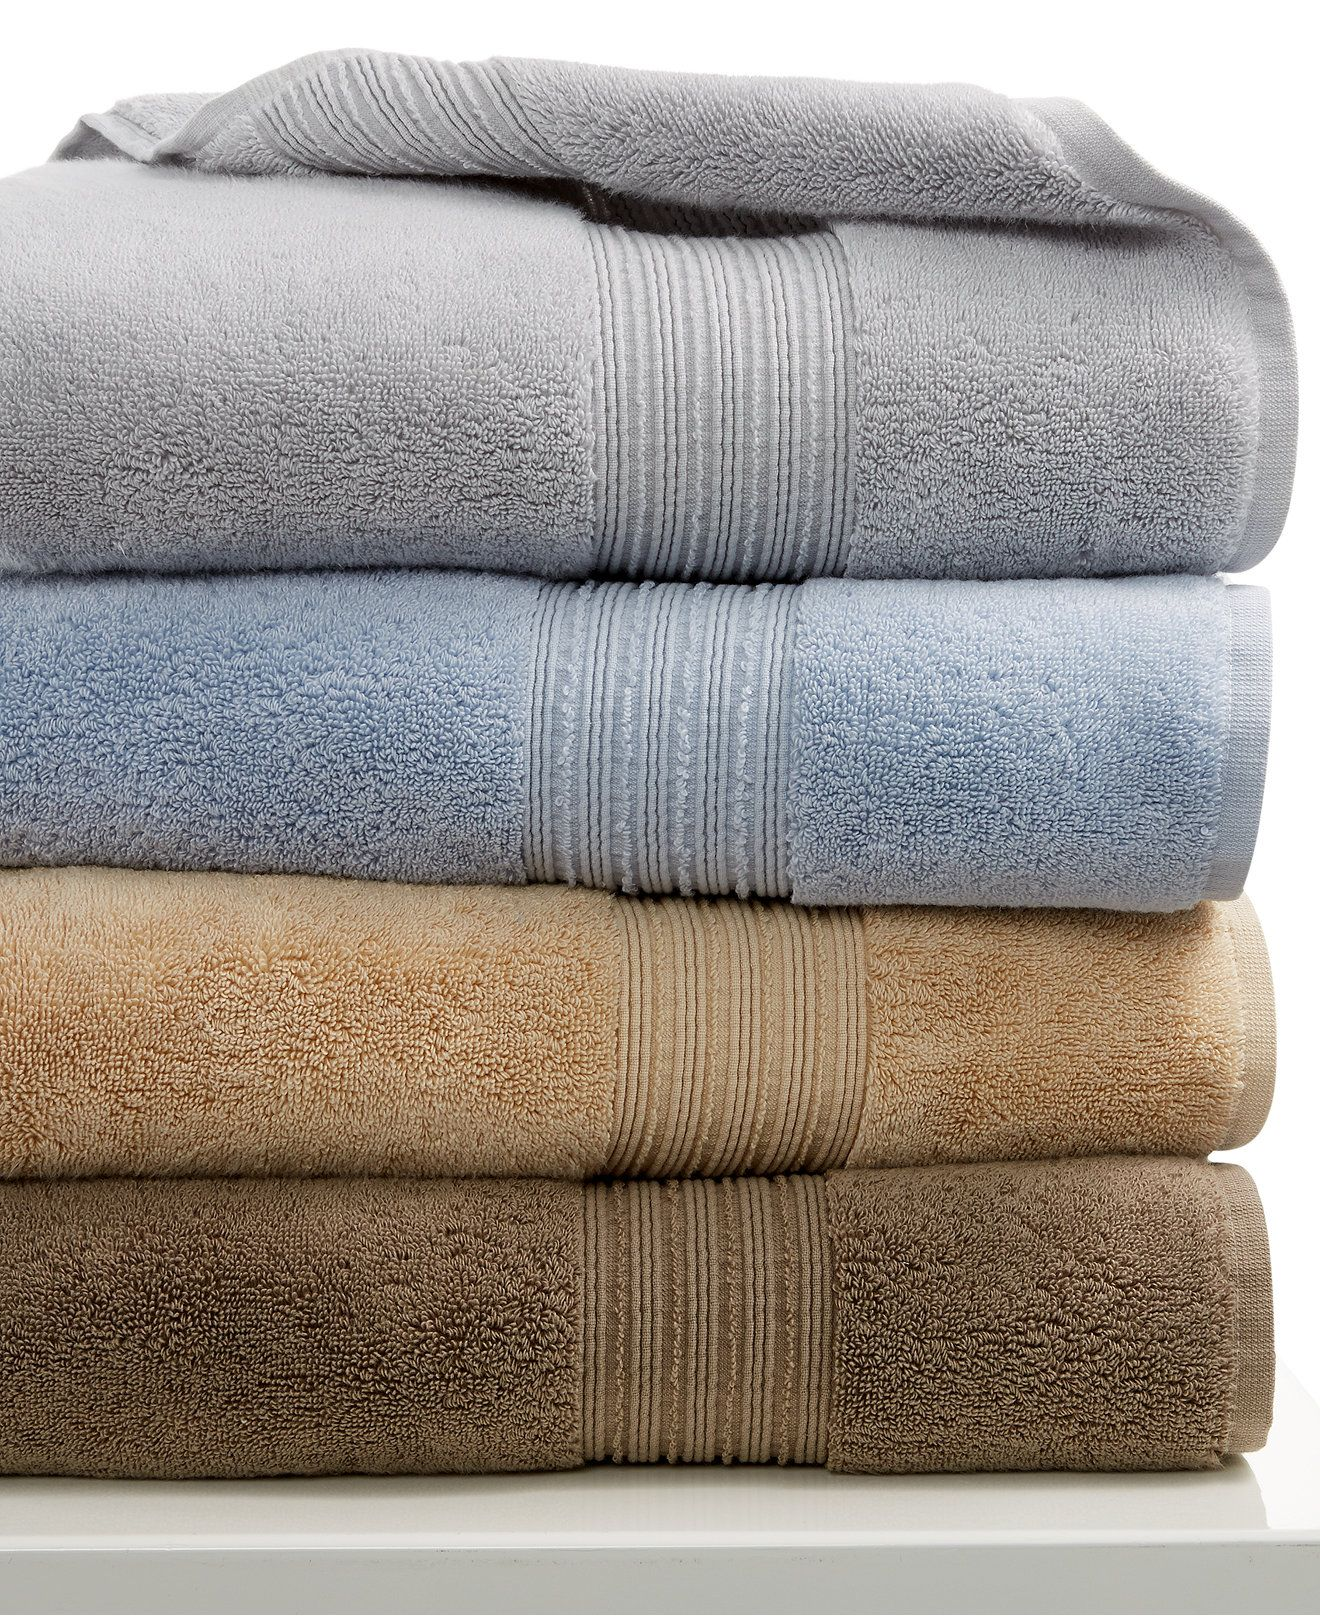 Macys Bath Towels Interesting Turkish Bath Towel Collection 100% Turkish Cotton Created For Design Inspiration